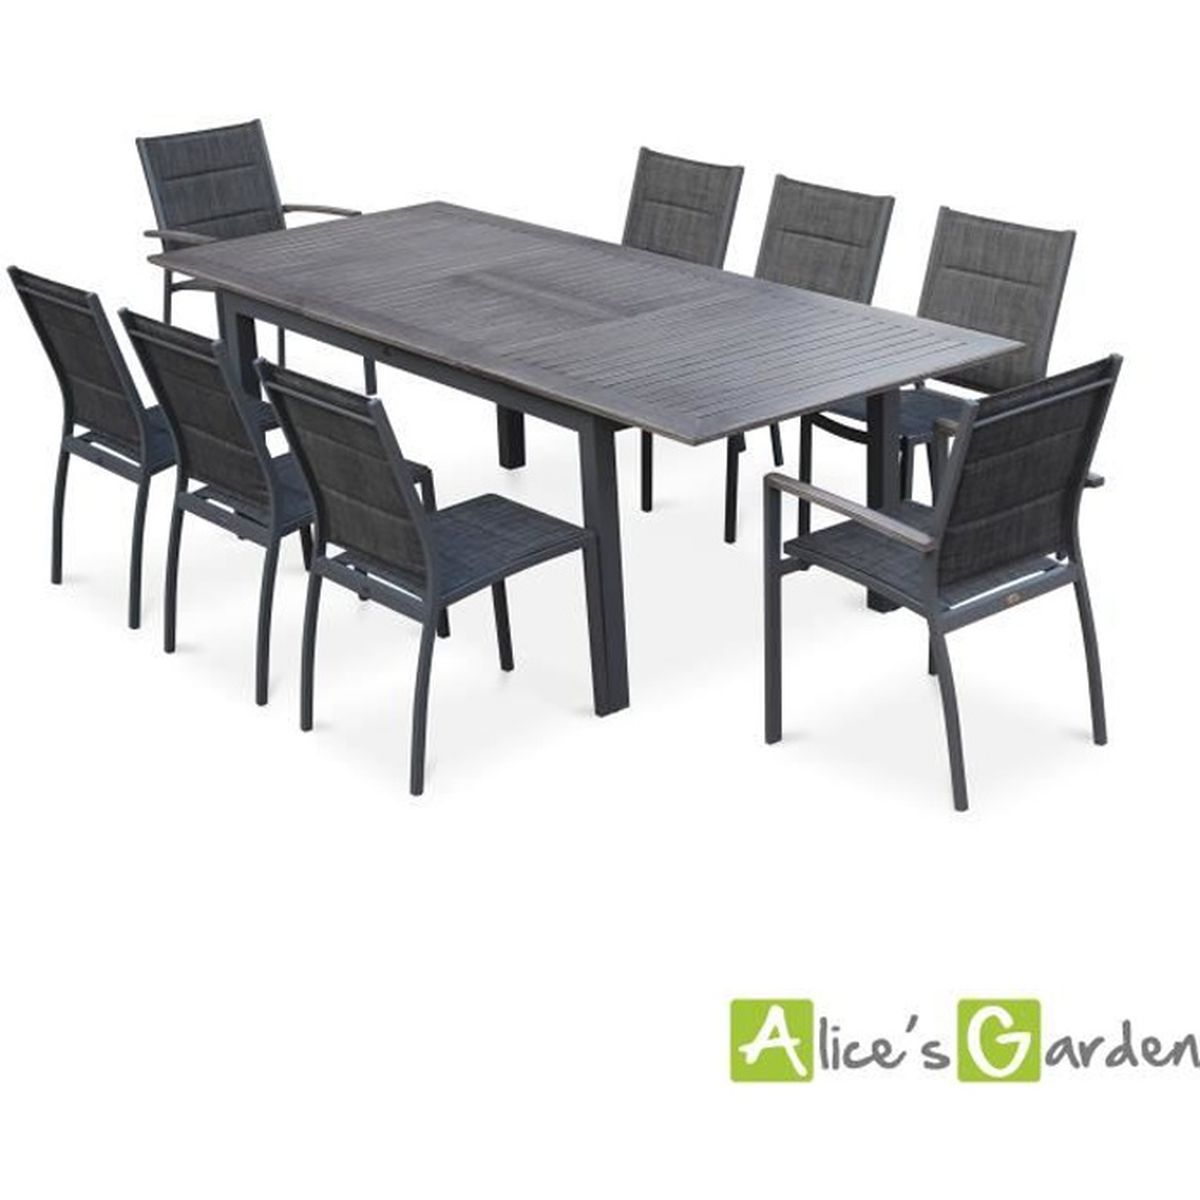 Salon de jardin 8 places table rallonge extensible 175 for Table jardin 8 personnes